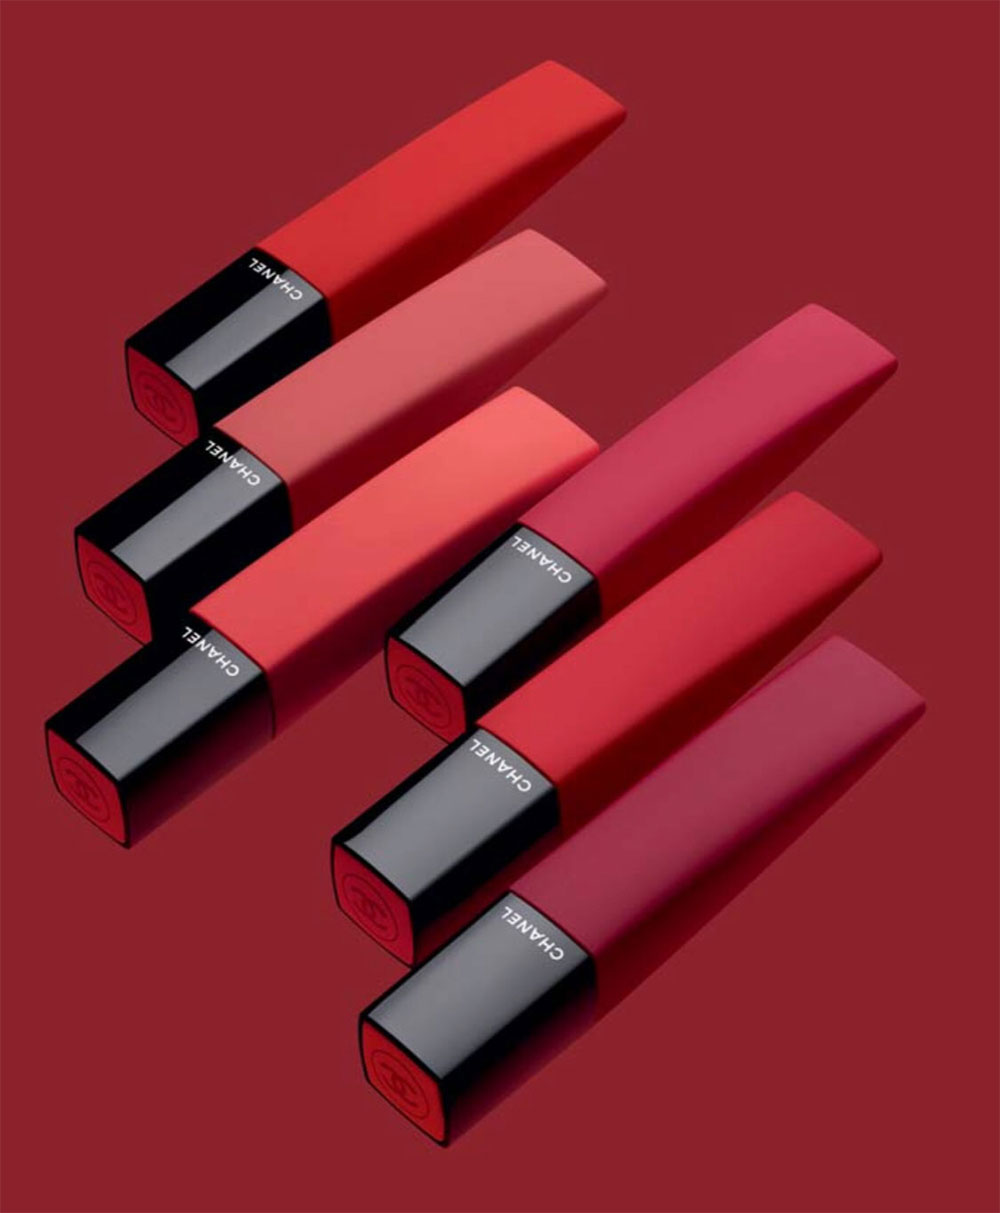 Chanel Rouge Allure Powder Liquid Matte Lipstick